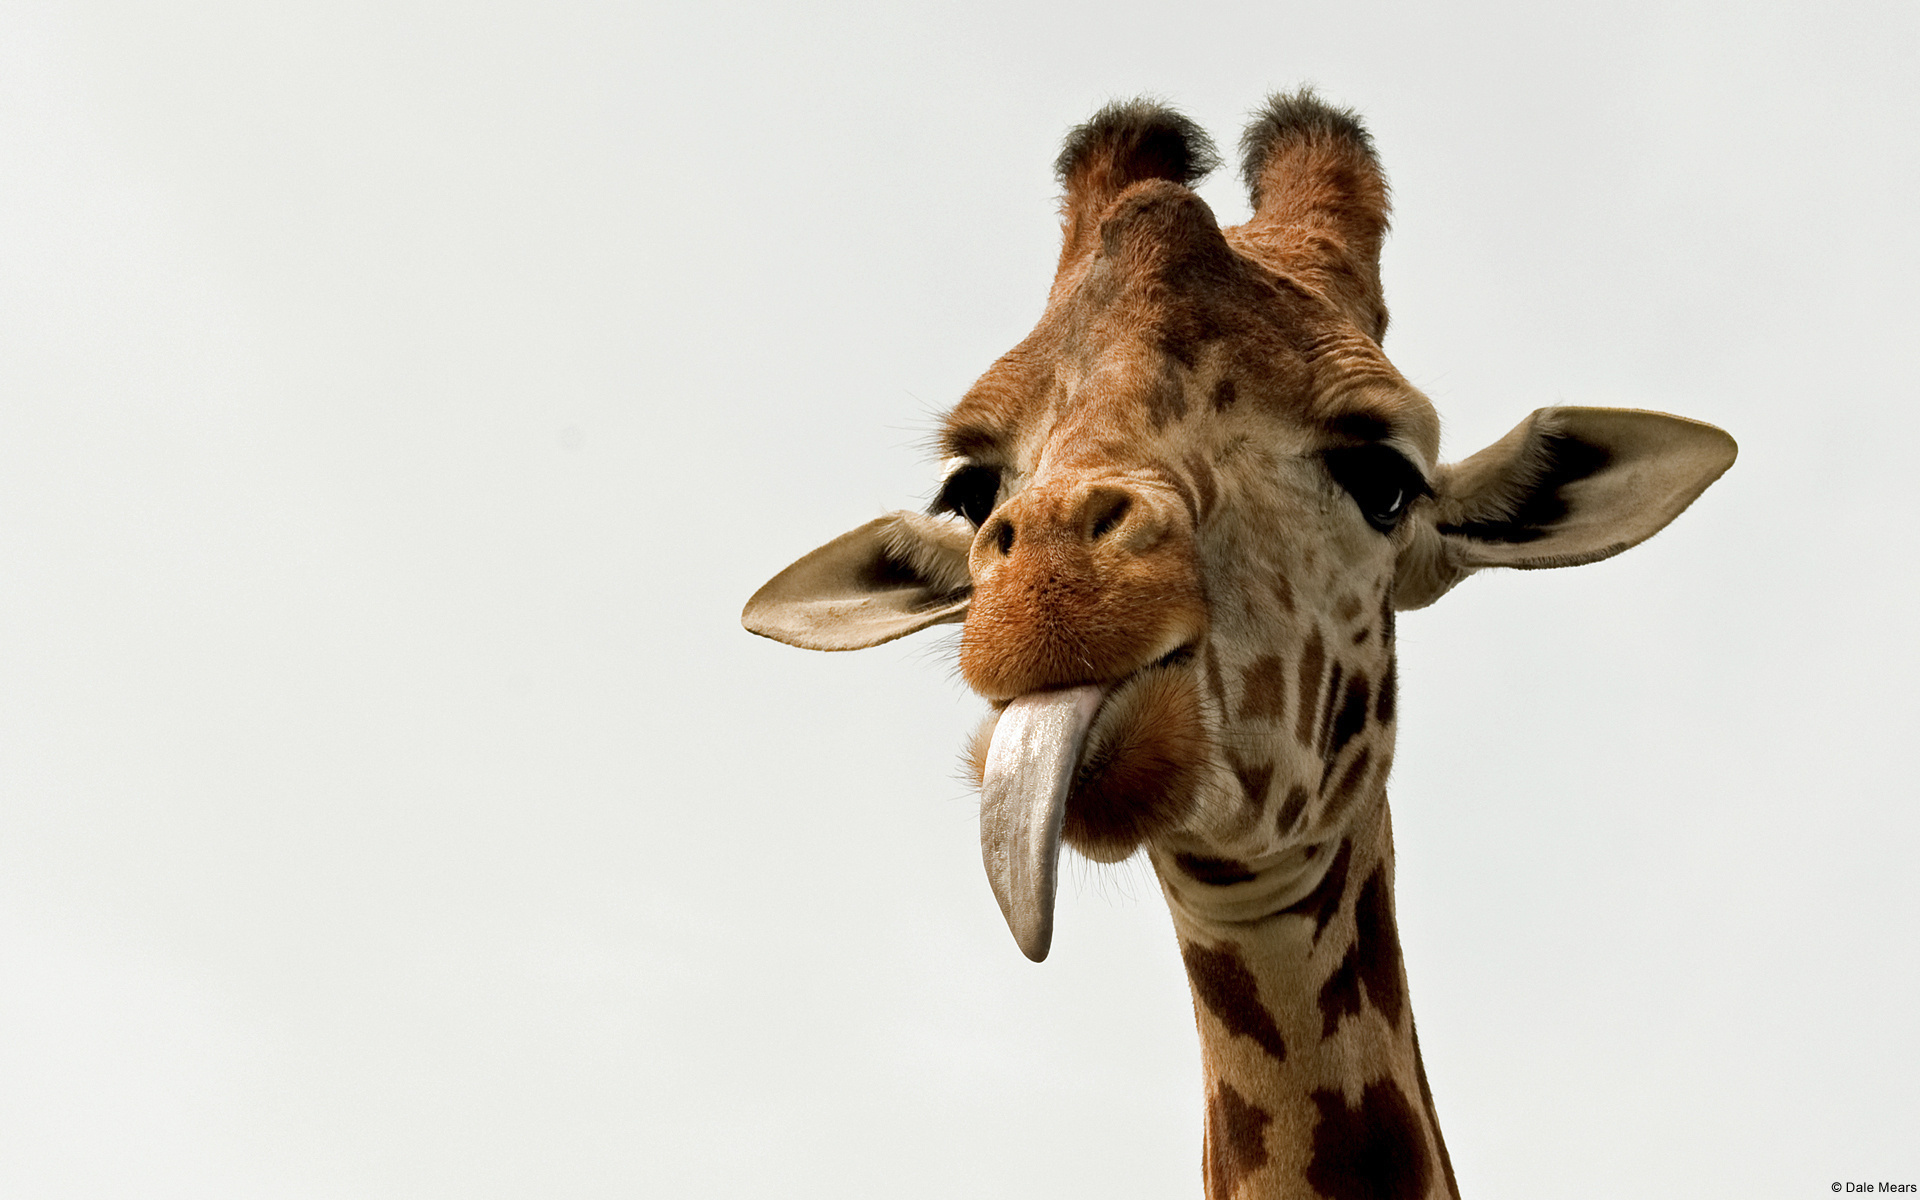 Giraffe Full HD Wallpaper and Background Image | 1920x1200 ...